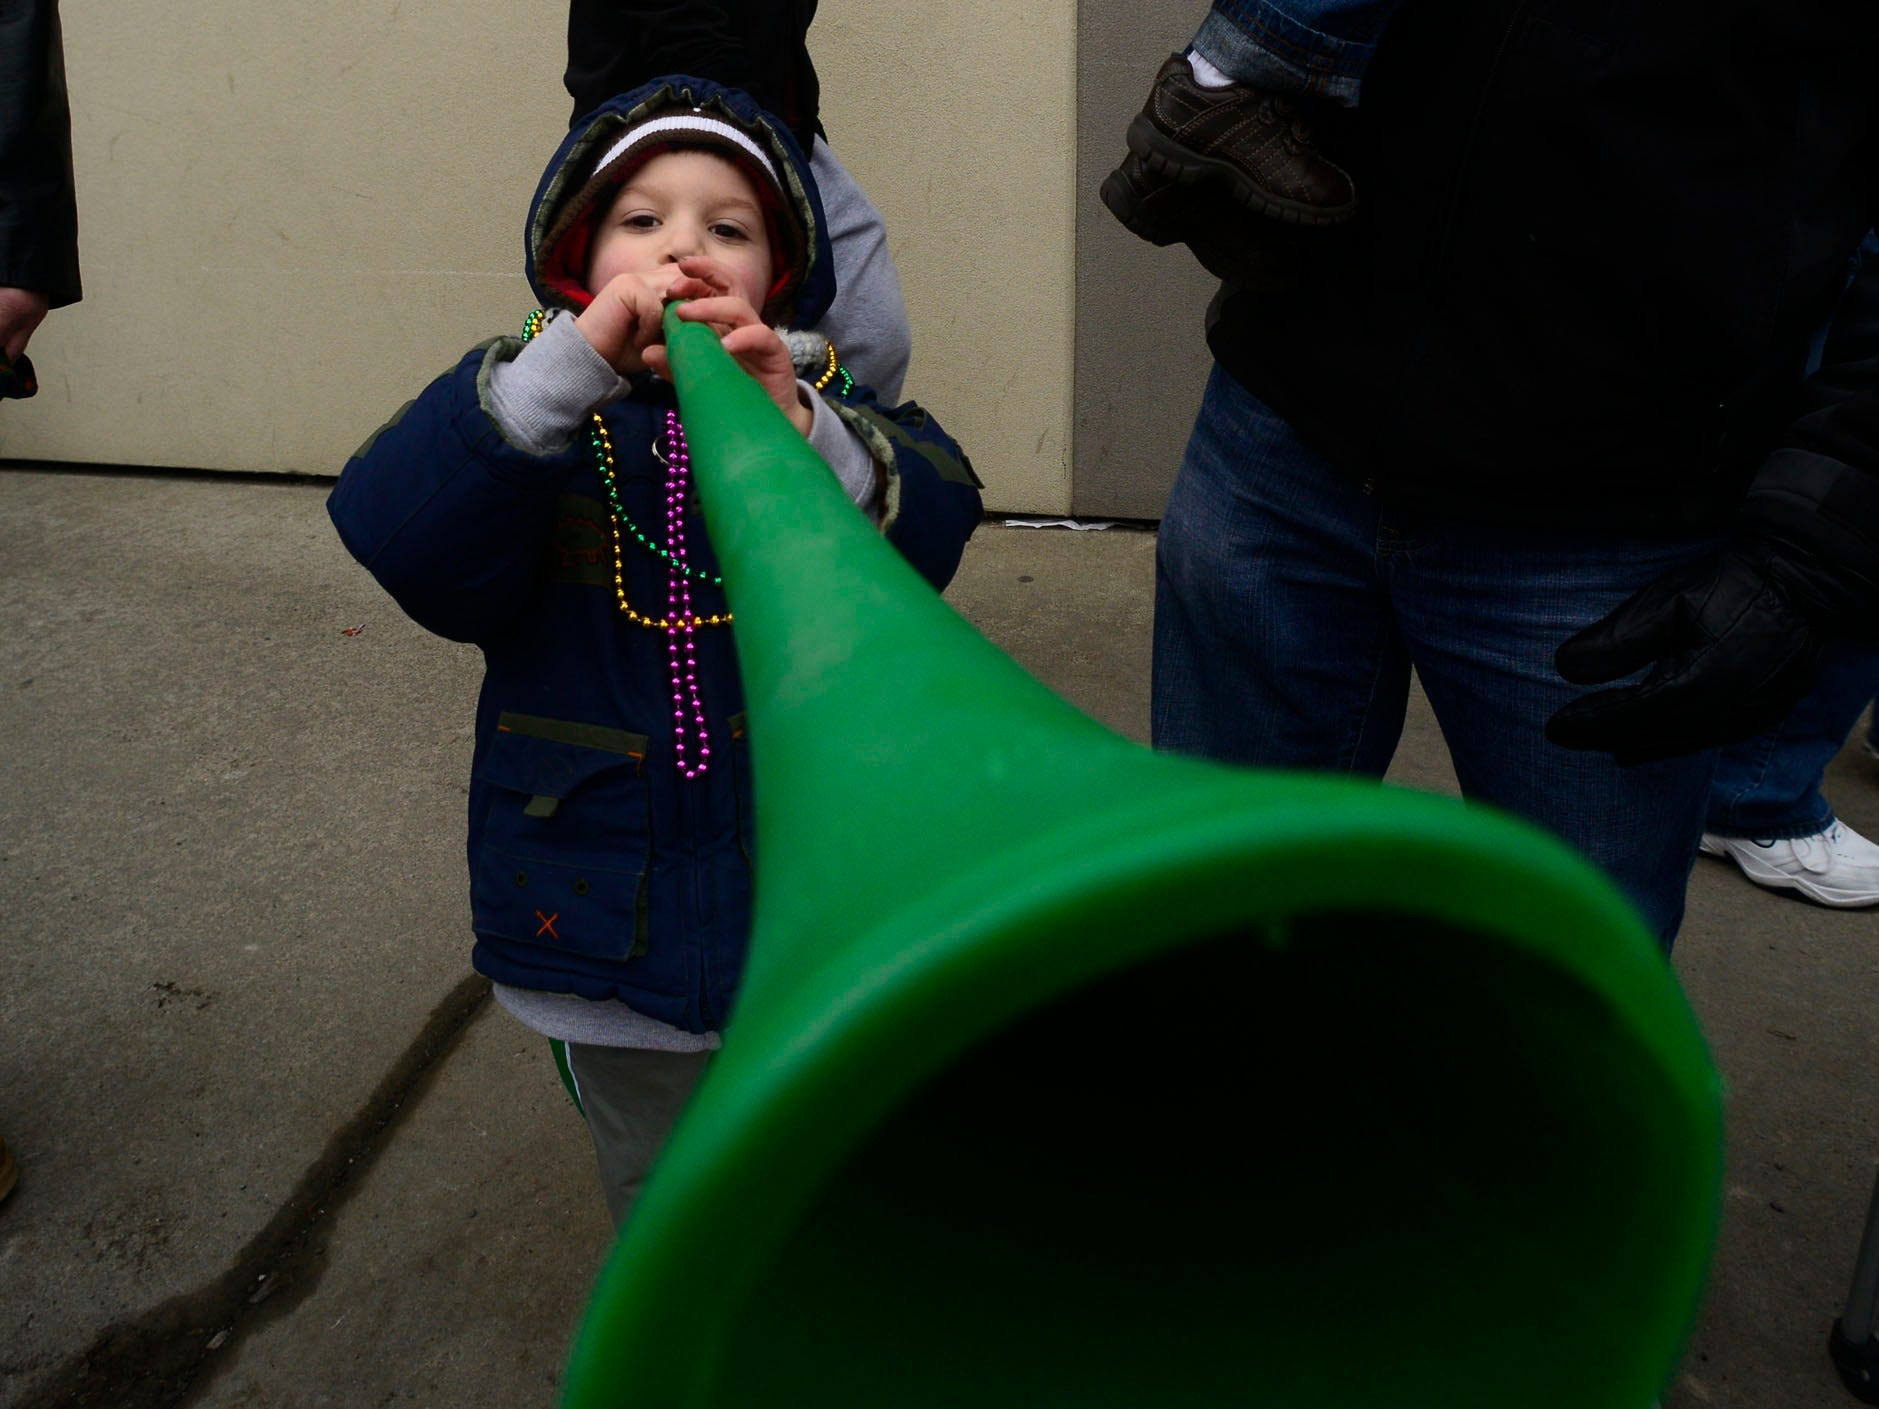 2013: Vito Marascia, 4, from Cohoes, blows a horn during the St. Patrick's parade in Binghamton on Saturday, March 2, 2013.